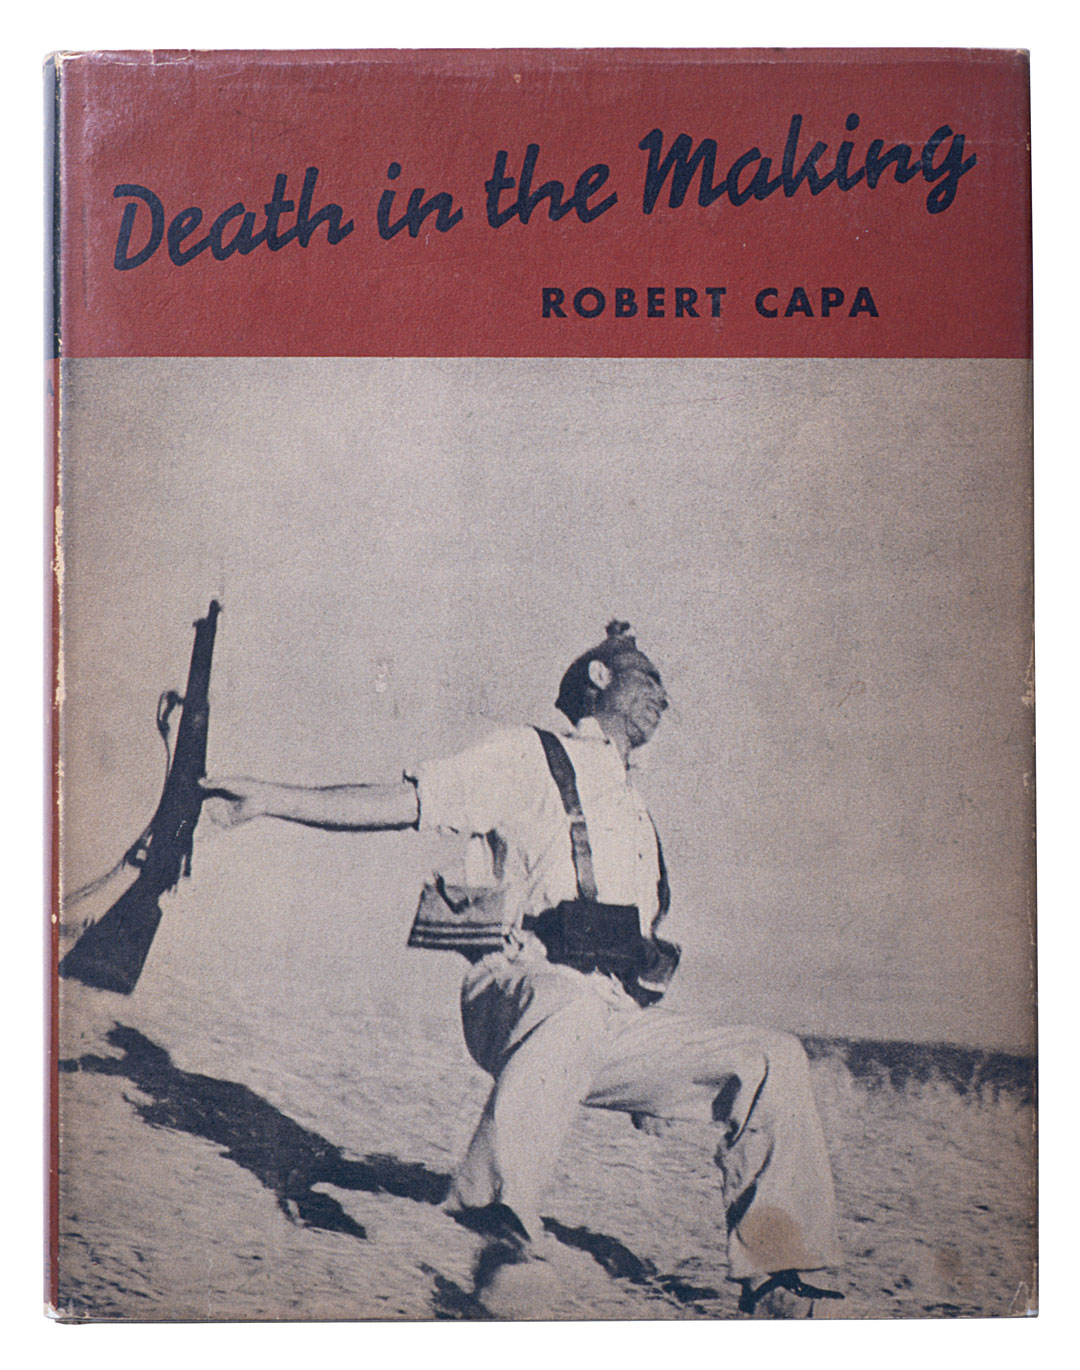 Robert Capa, Death in the Making, published by Covici-Friede, New York, 1938. As featured in Magnum Photobook: The Catalogue Raisonné